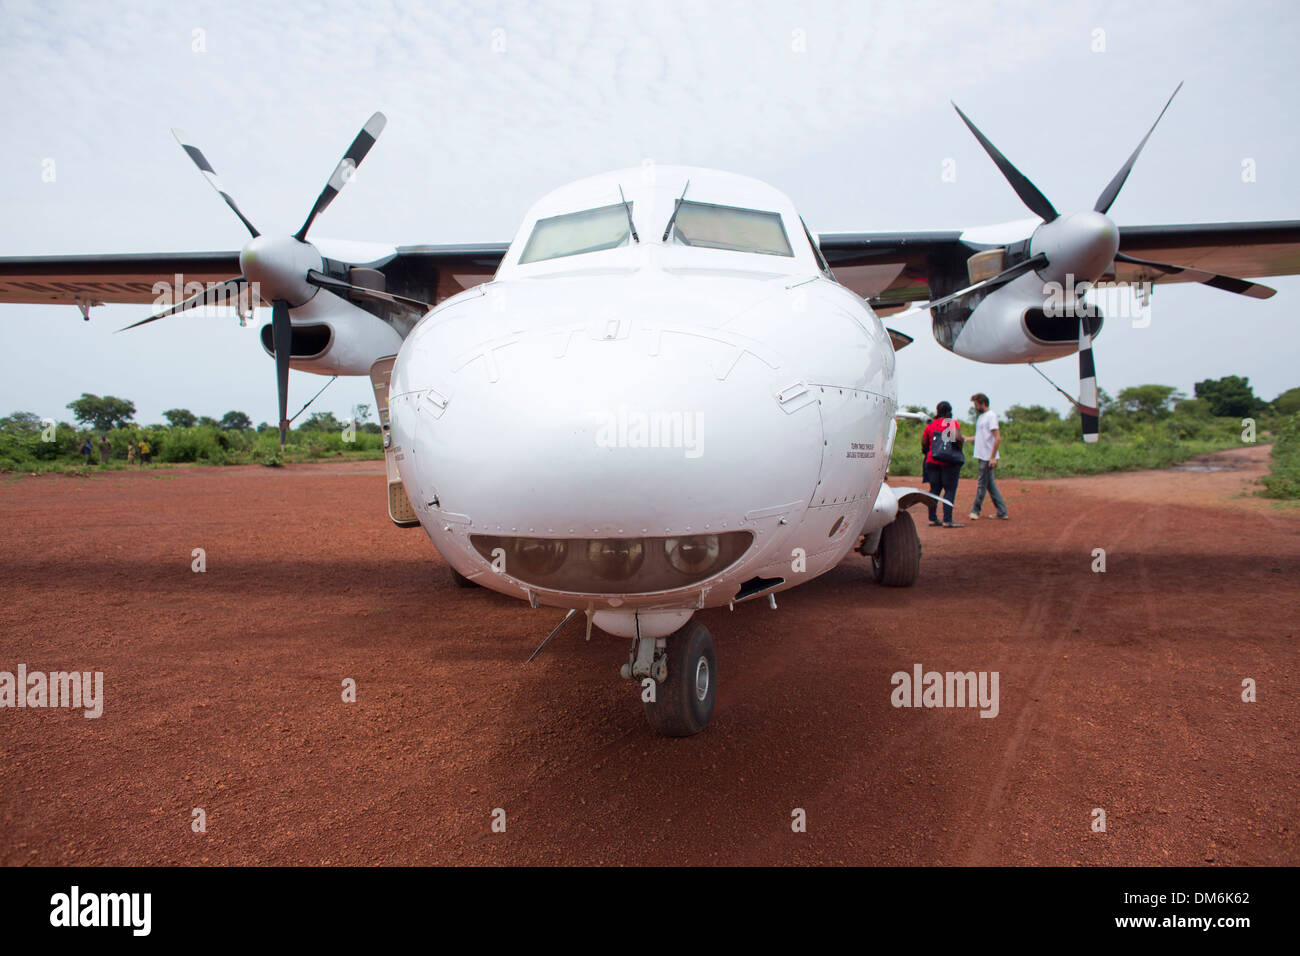 Humanitarian airs ervice (UNHAS) in central african republic - Stock Image